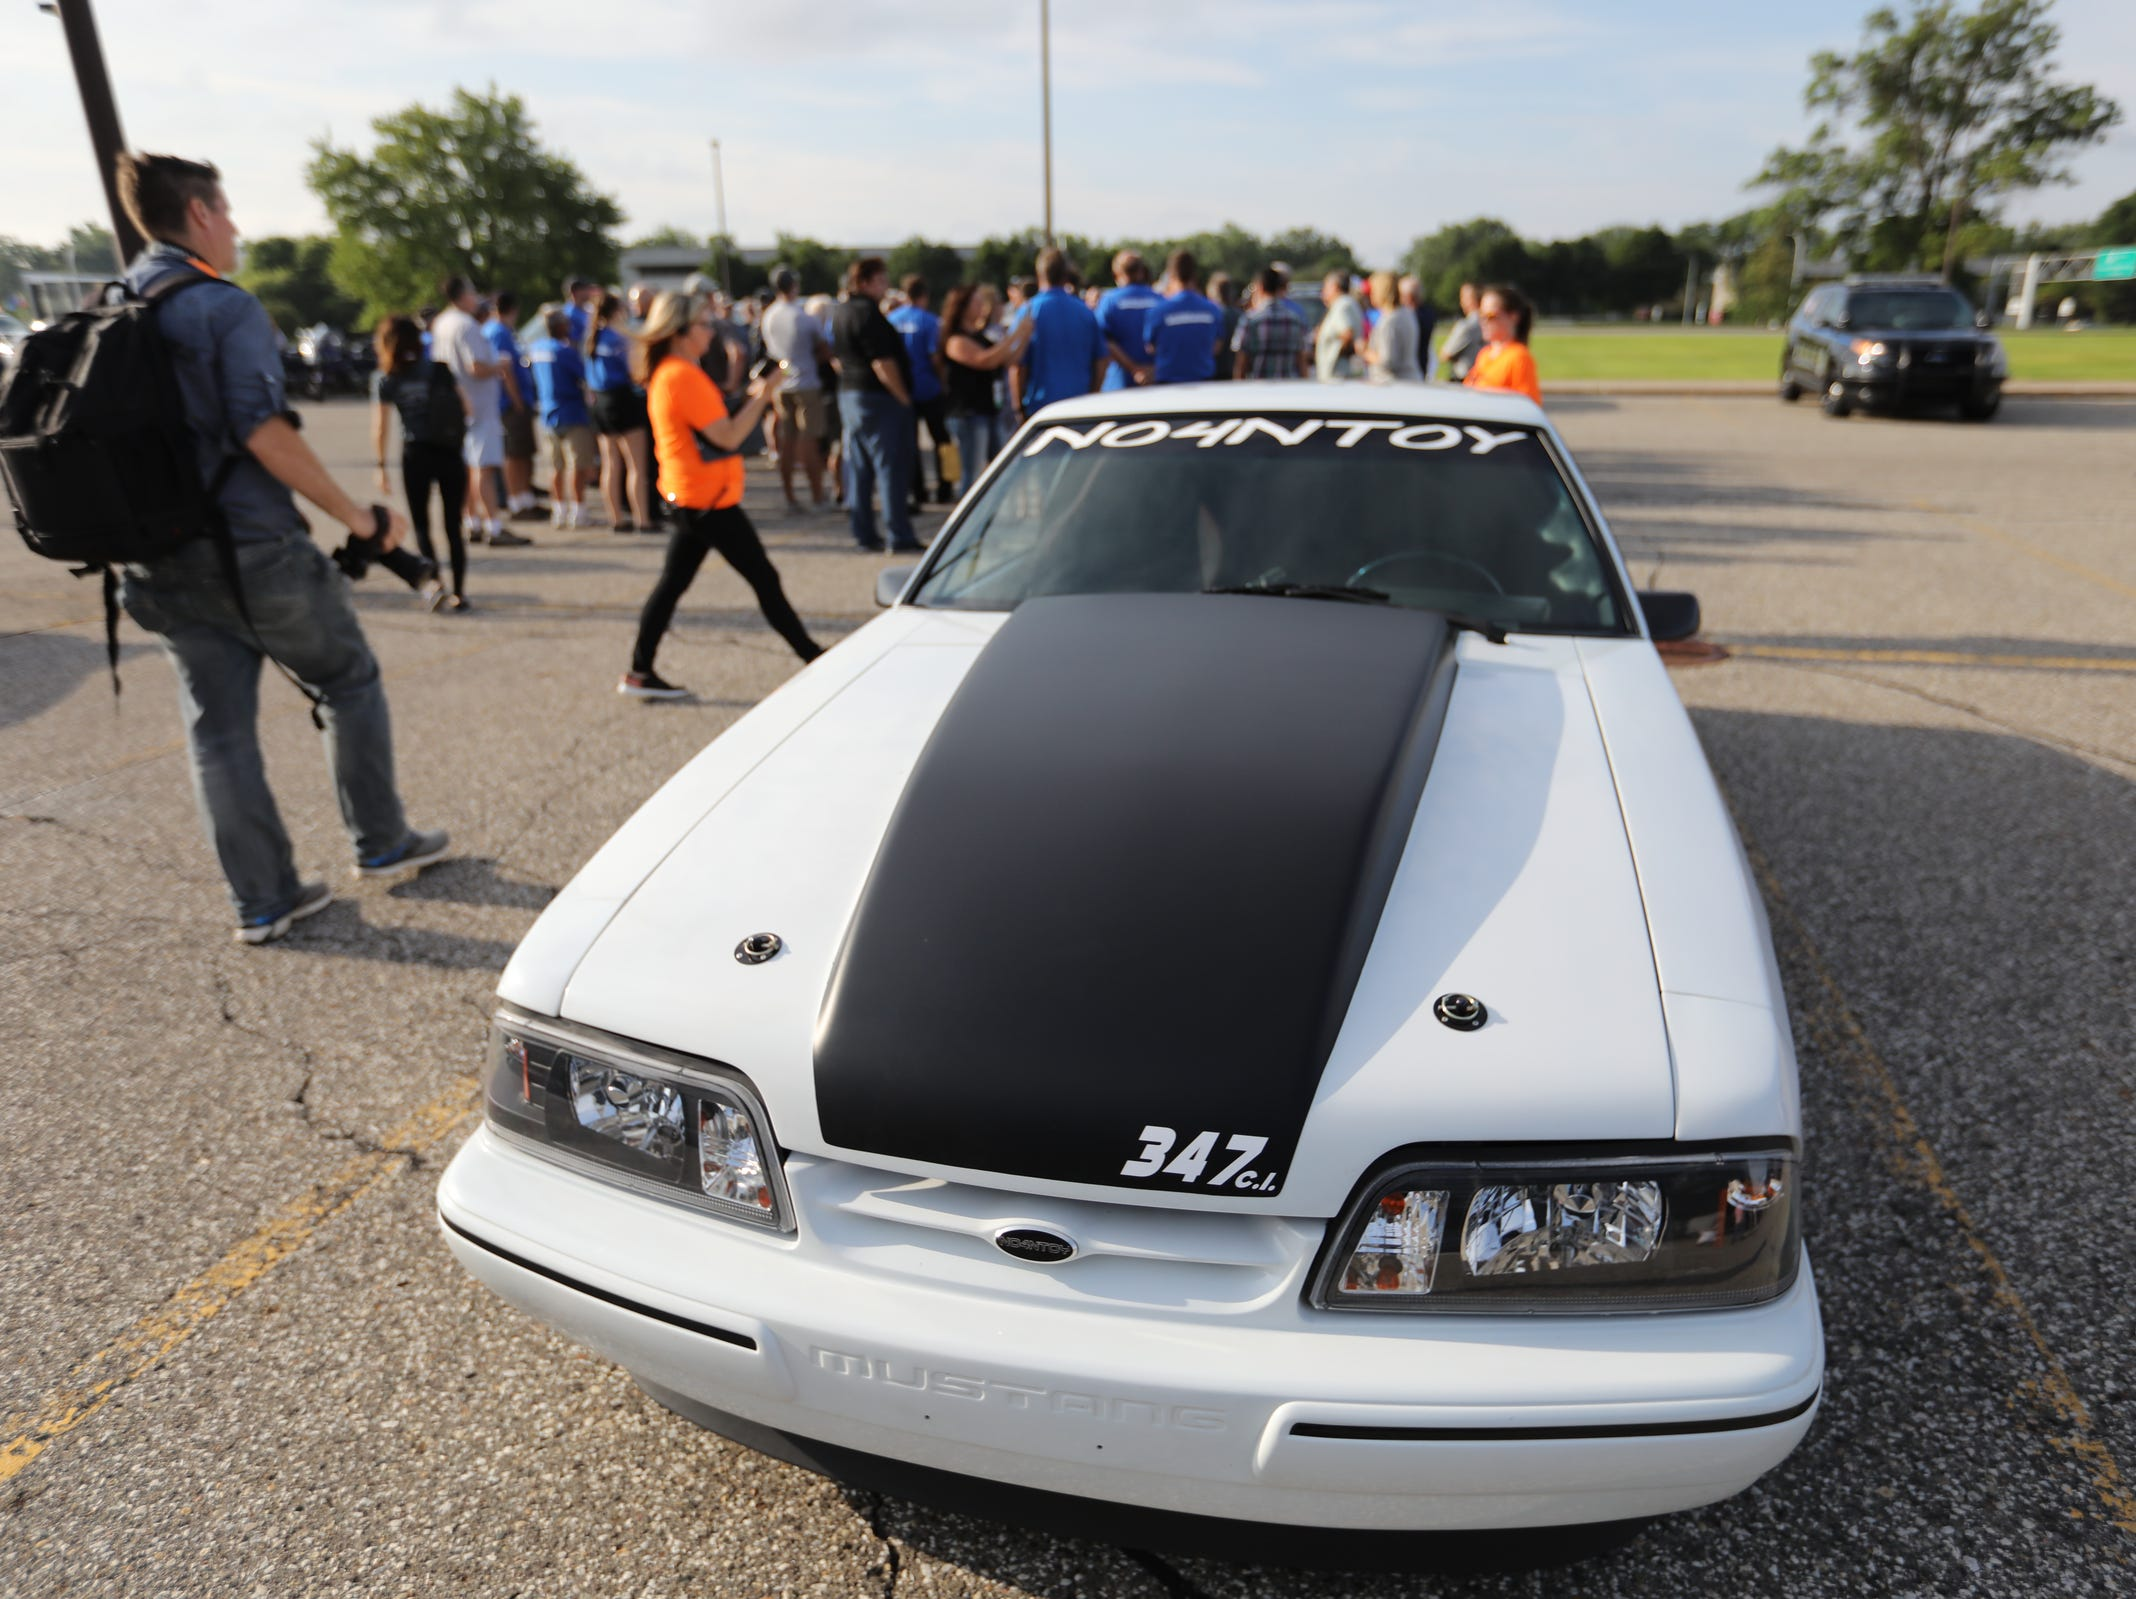 Mark Ashbugh, 38, of Marine City says his 1991 Ford Mustang LX Coupe has a 347 Stroker engine, but doesn't race it, seen during a Ford event celebrating the 10,000,000 Mustang built at the Ford Motor Company World Headquarters in Dearborn on Wed., Aug 8, 2018.